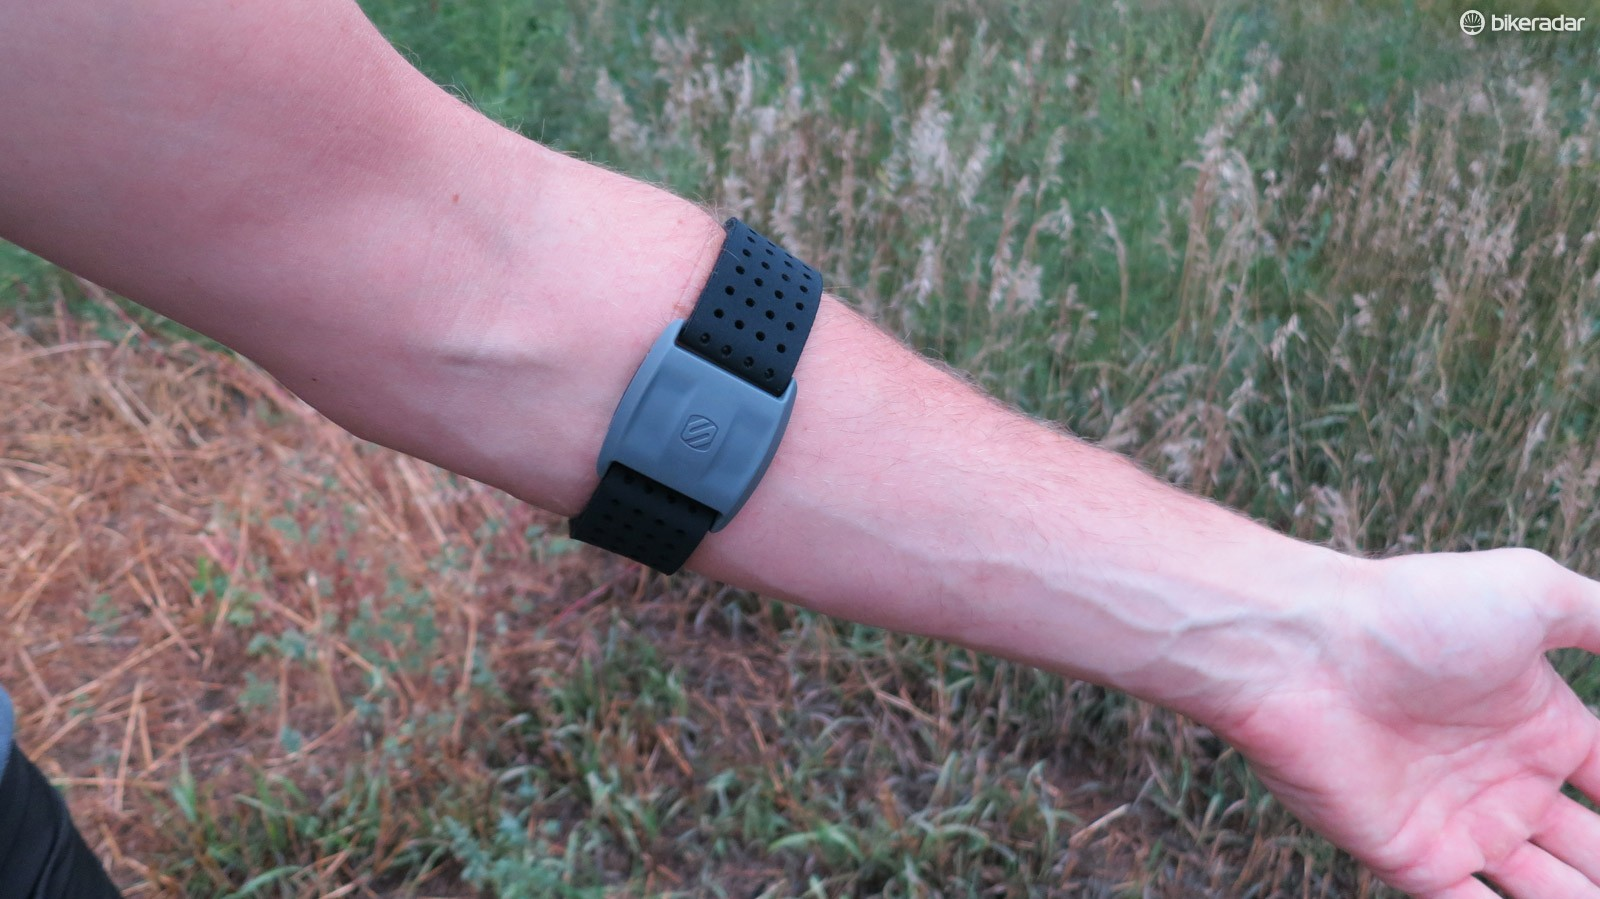 If you're not fond of chest straps, the Scosche Rhythm+ forearm monitor may work for you